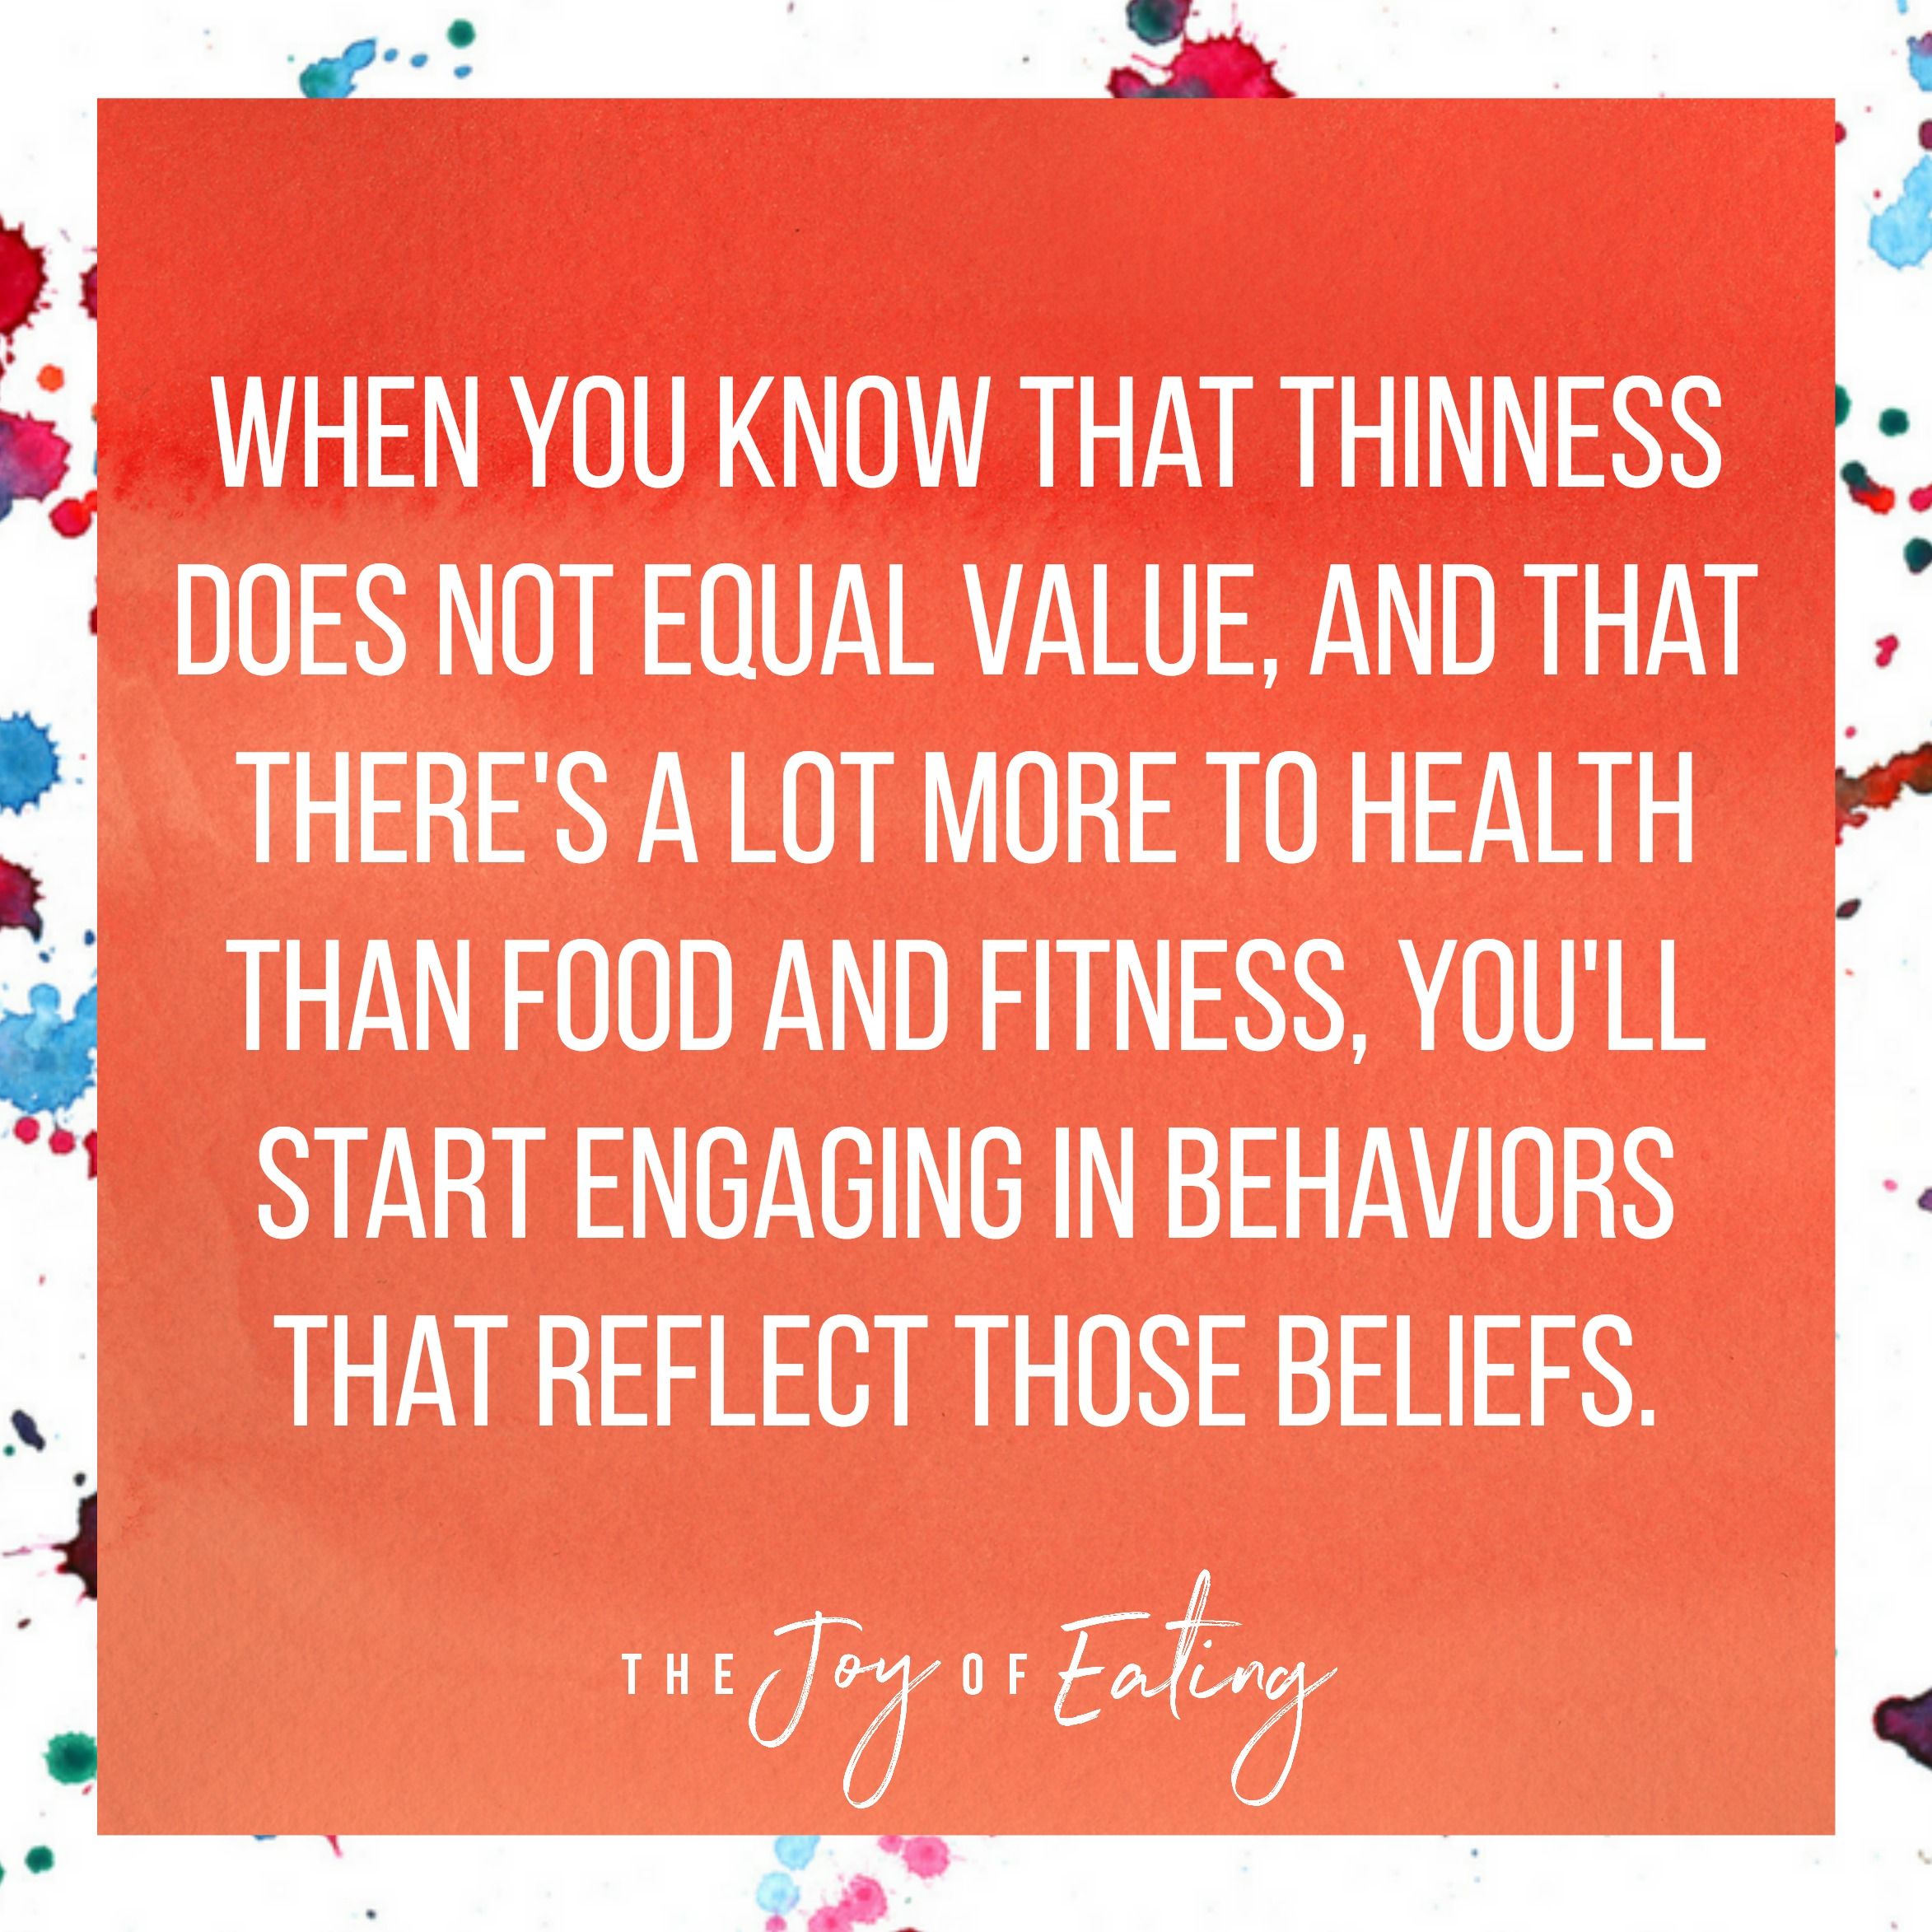 Learn how to change beliefs that are rooted in diet mentality #healthateverysize #haes #intuitiveeating #nondiet #wellness